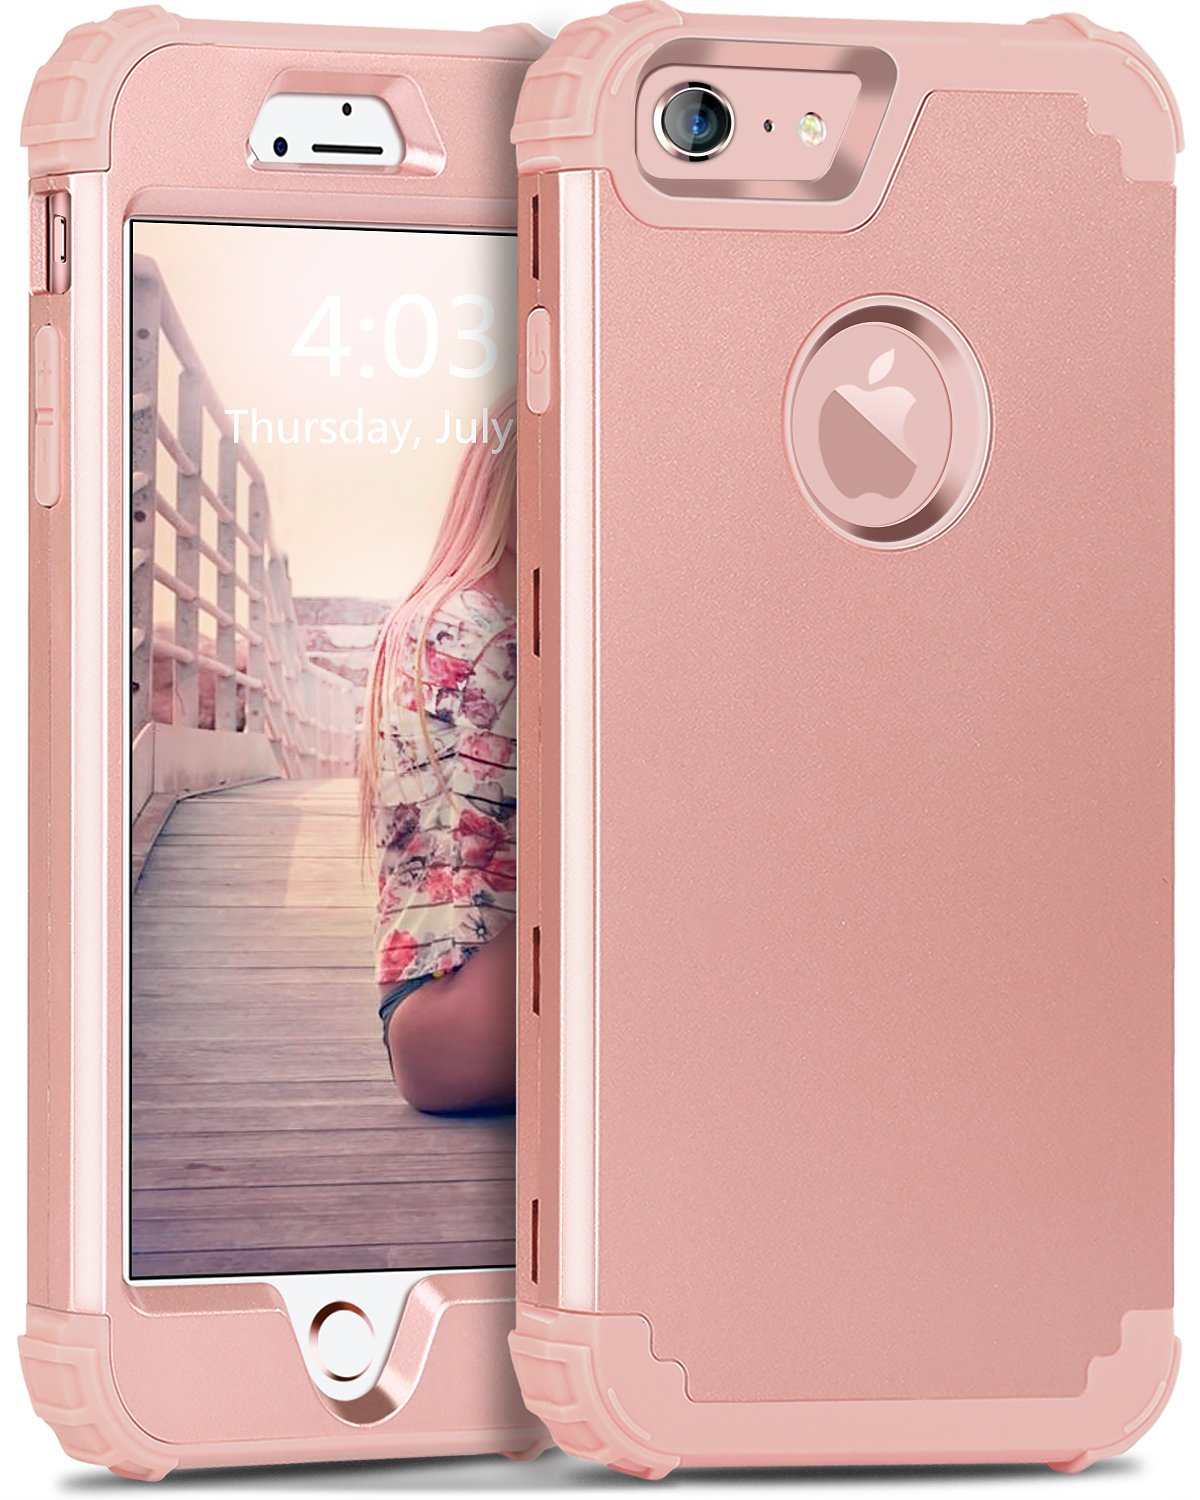 funda protectora para iphone 6s plus, rose gold